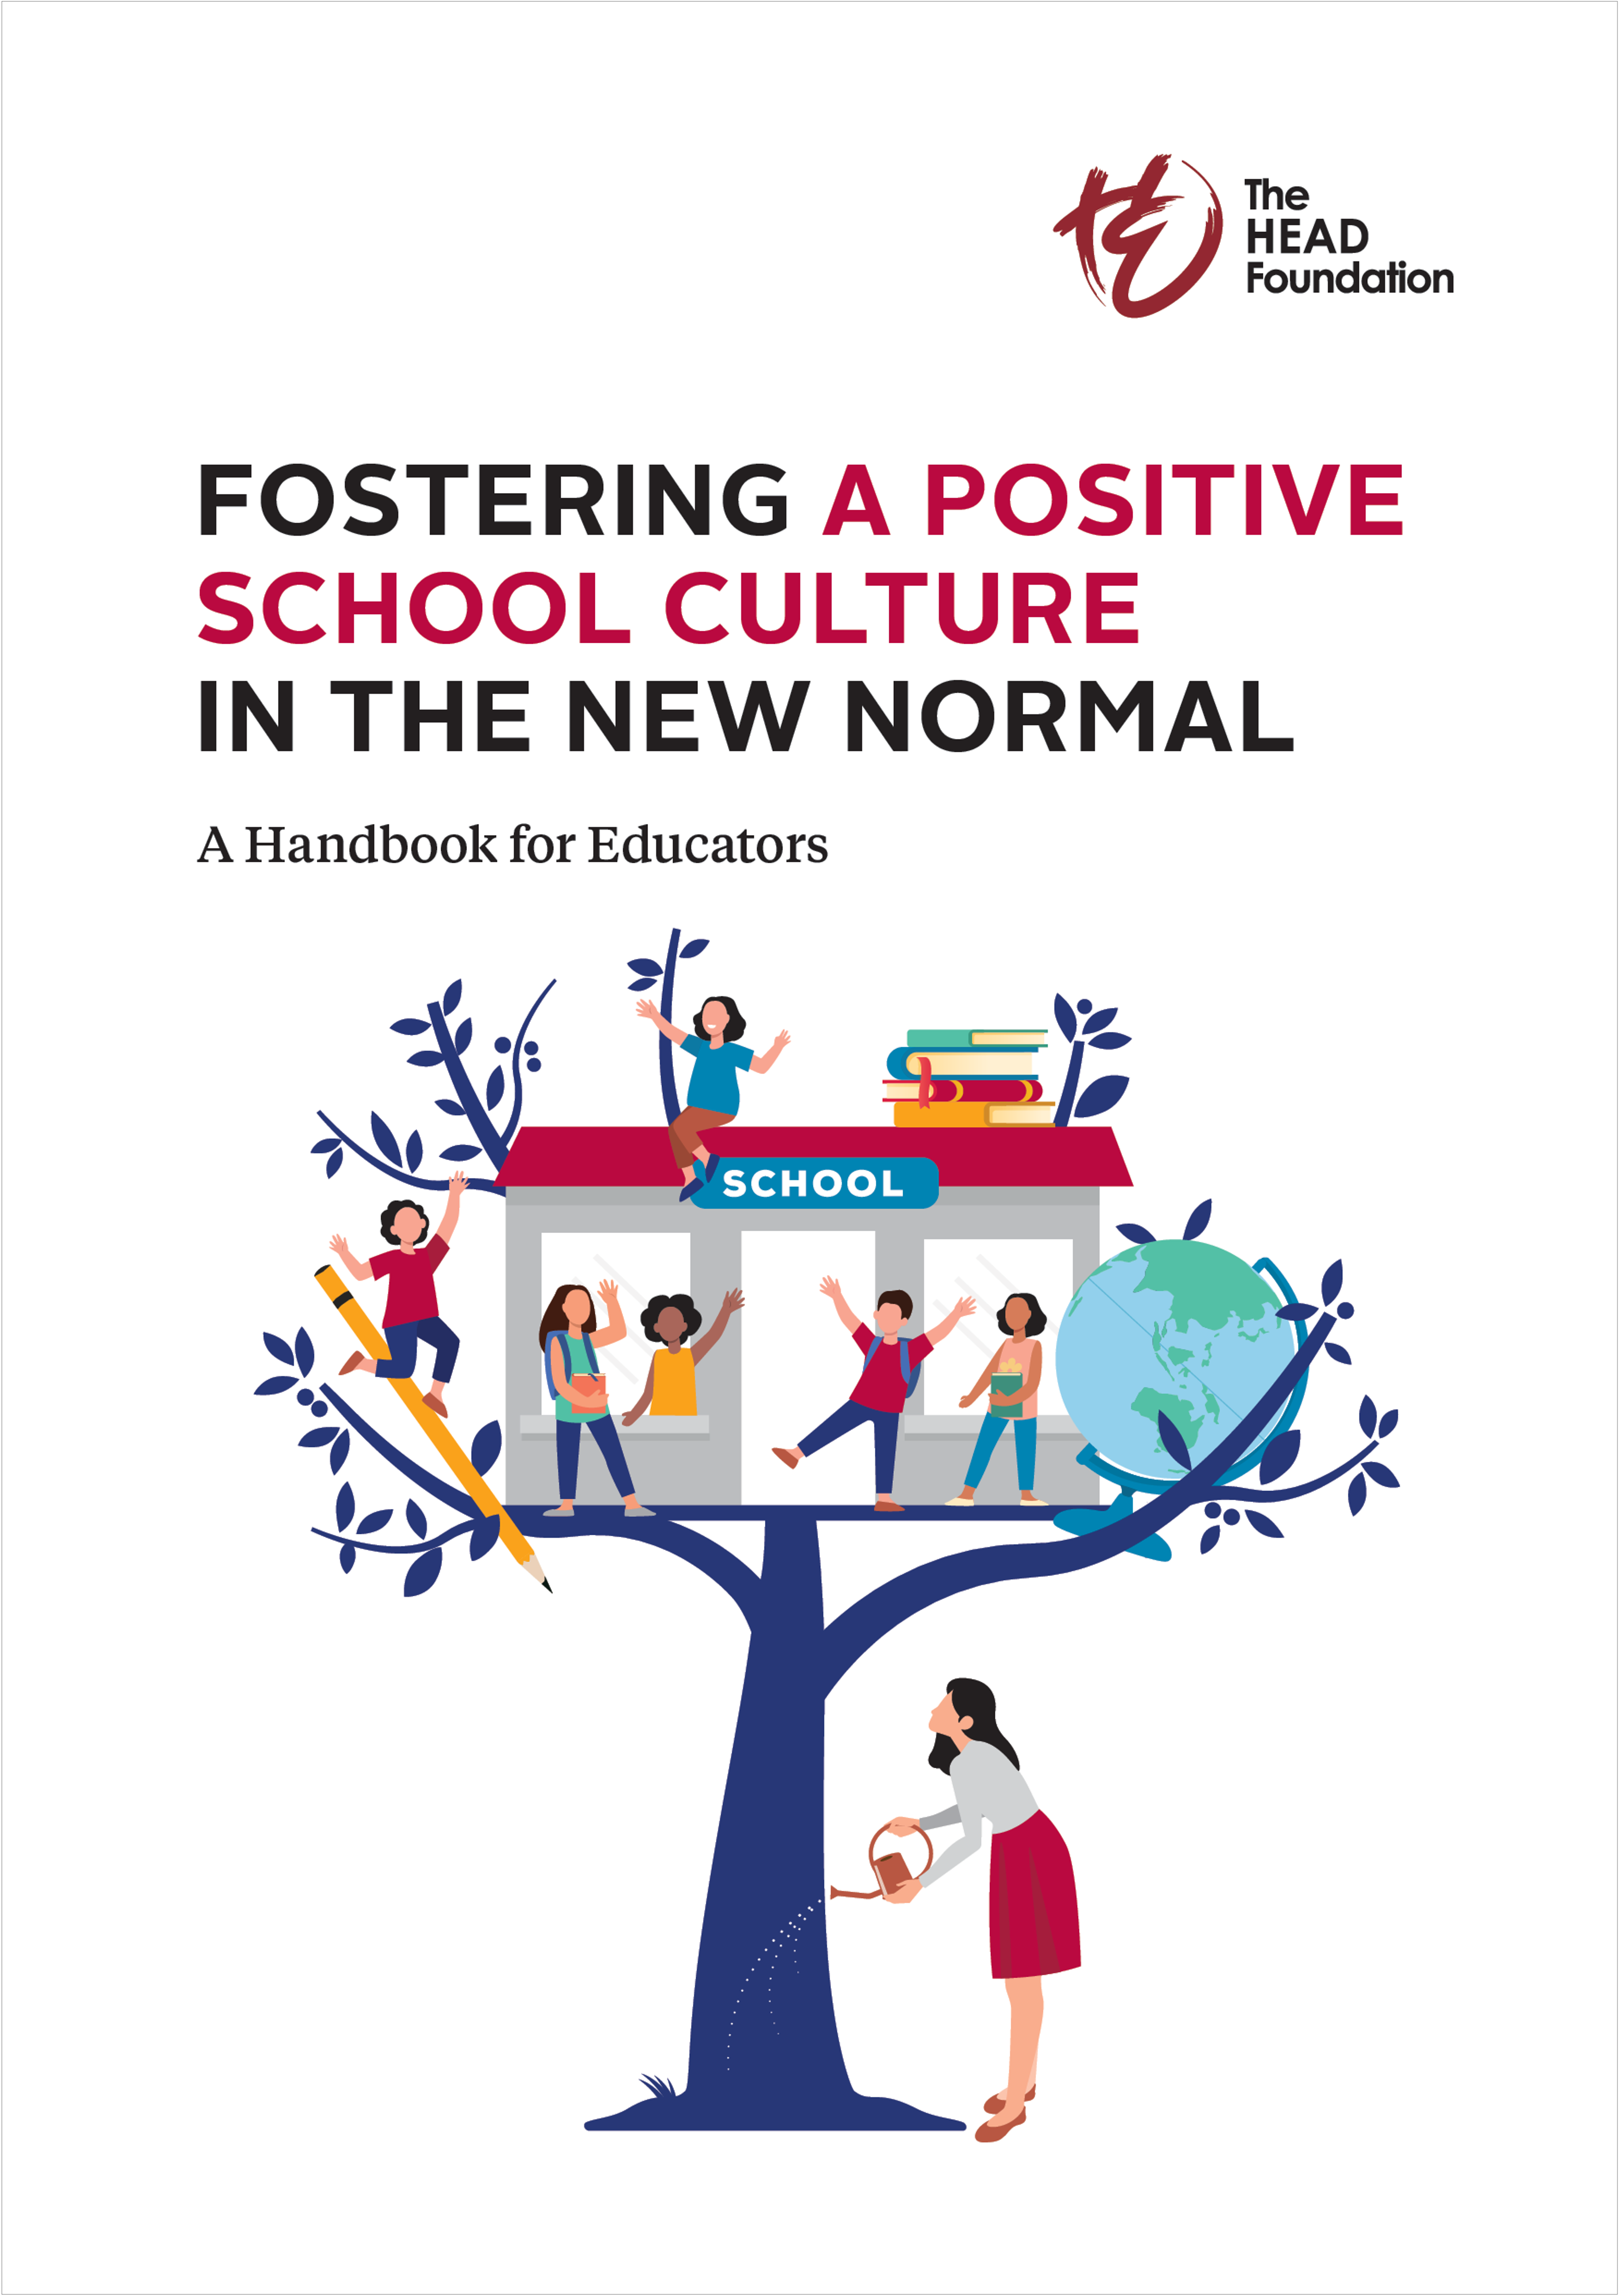 Handbook 2 cover_Fostering a positive school culture (with border lines)